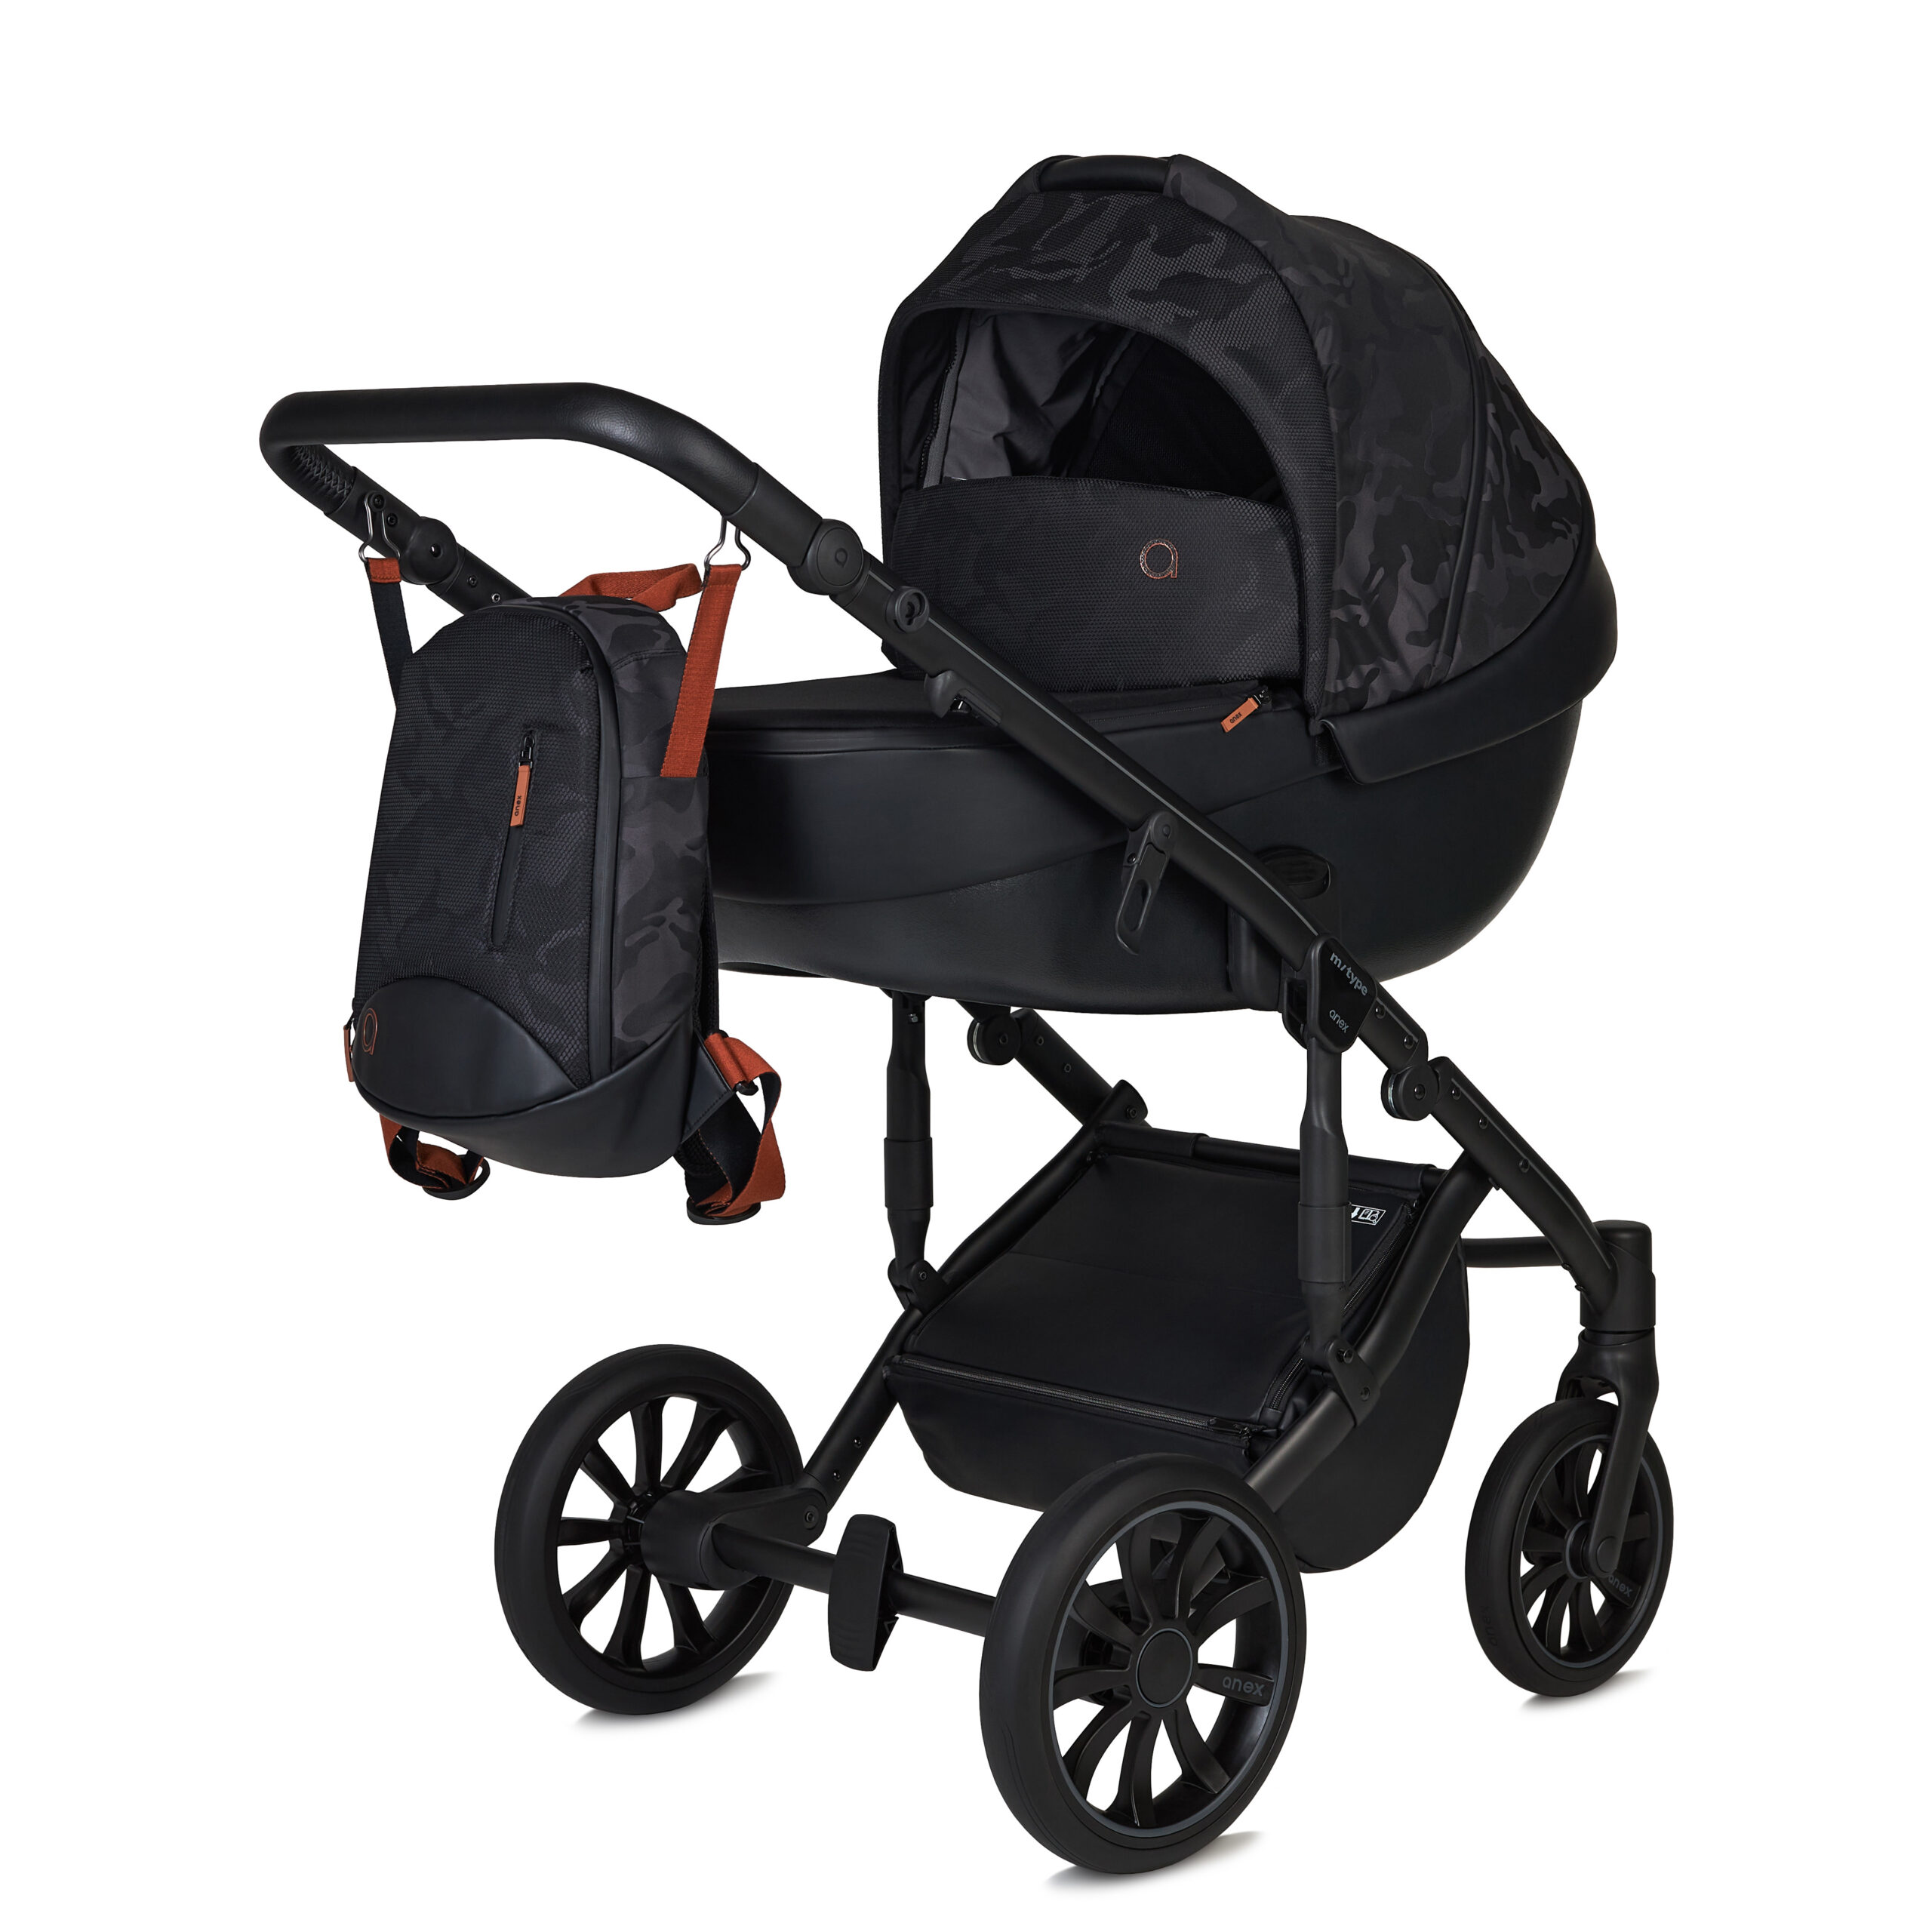 Anex kinderwagen m type hide special edition